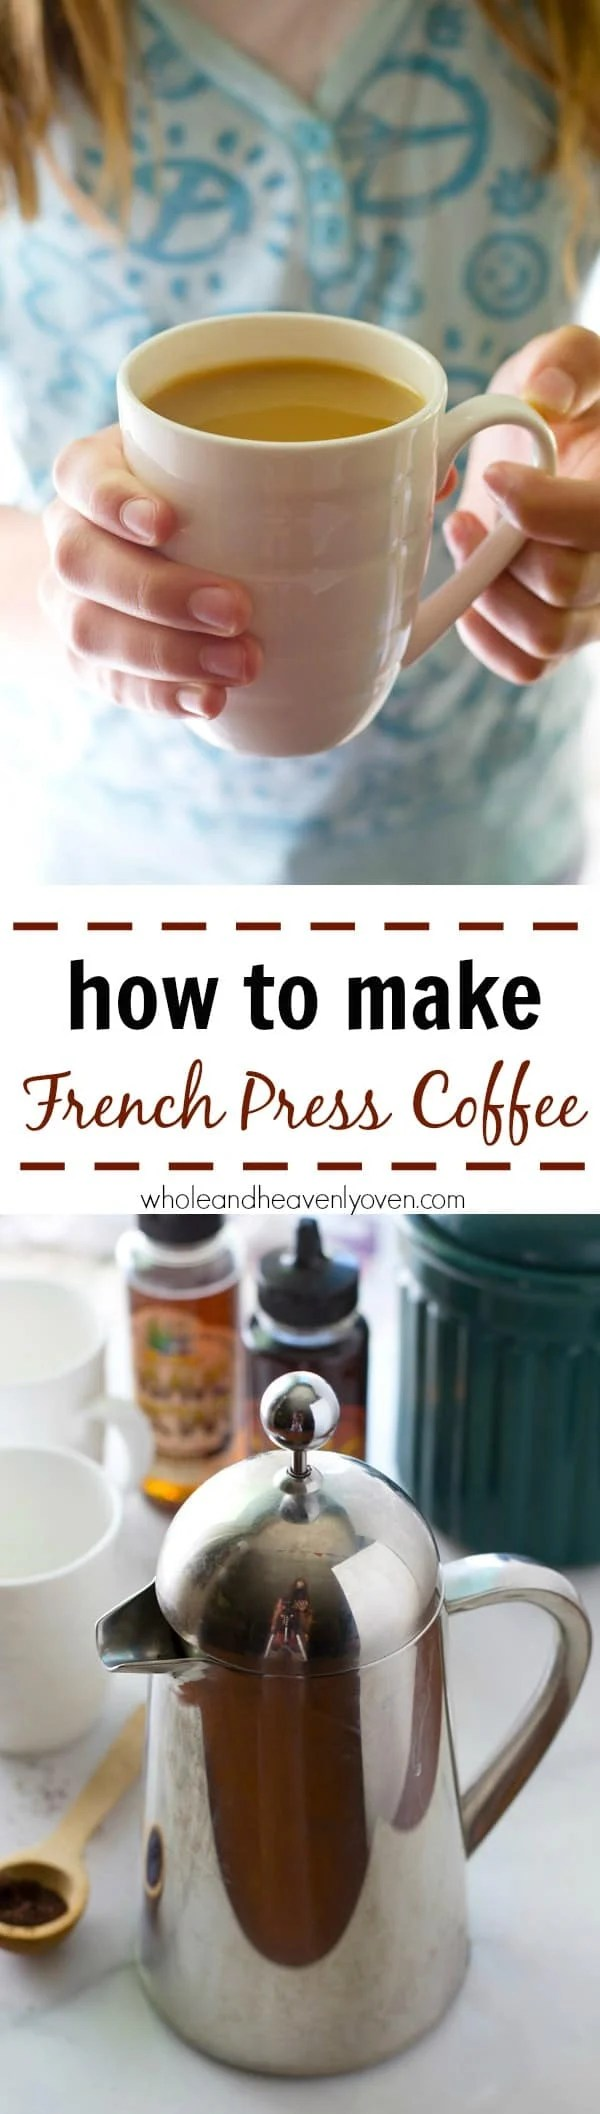 Once you learn how easy it is to make the perfect cup of french press coffee, you may never use your coffee maker again! Step-by-step photos included. @WholeHeavenly